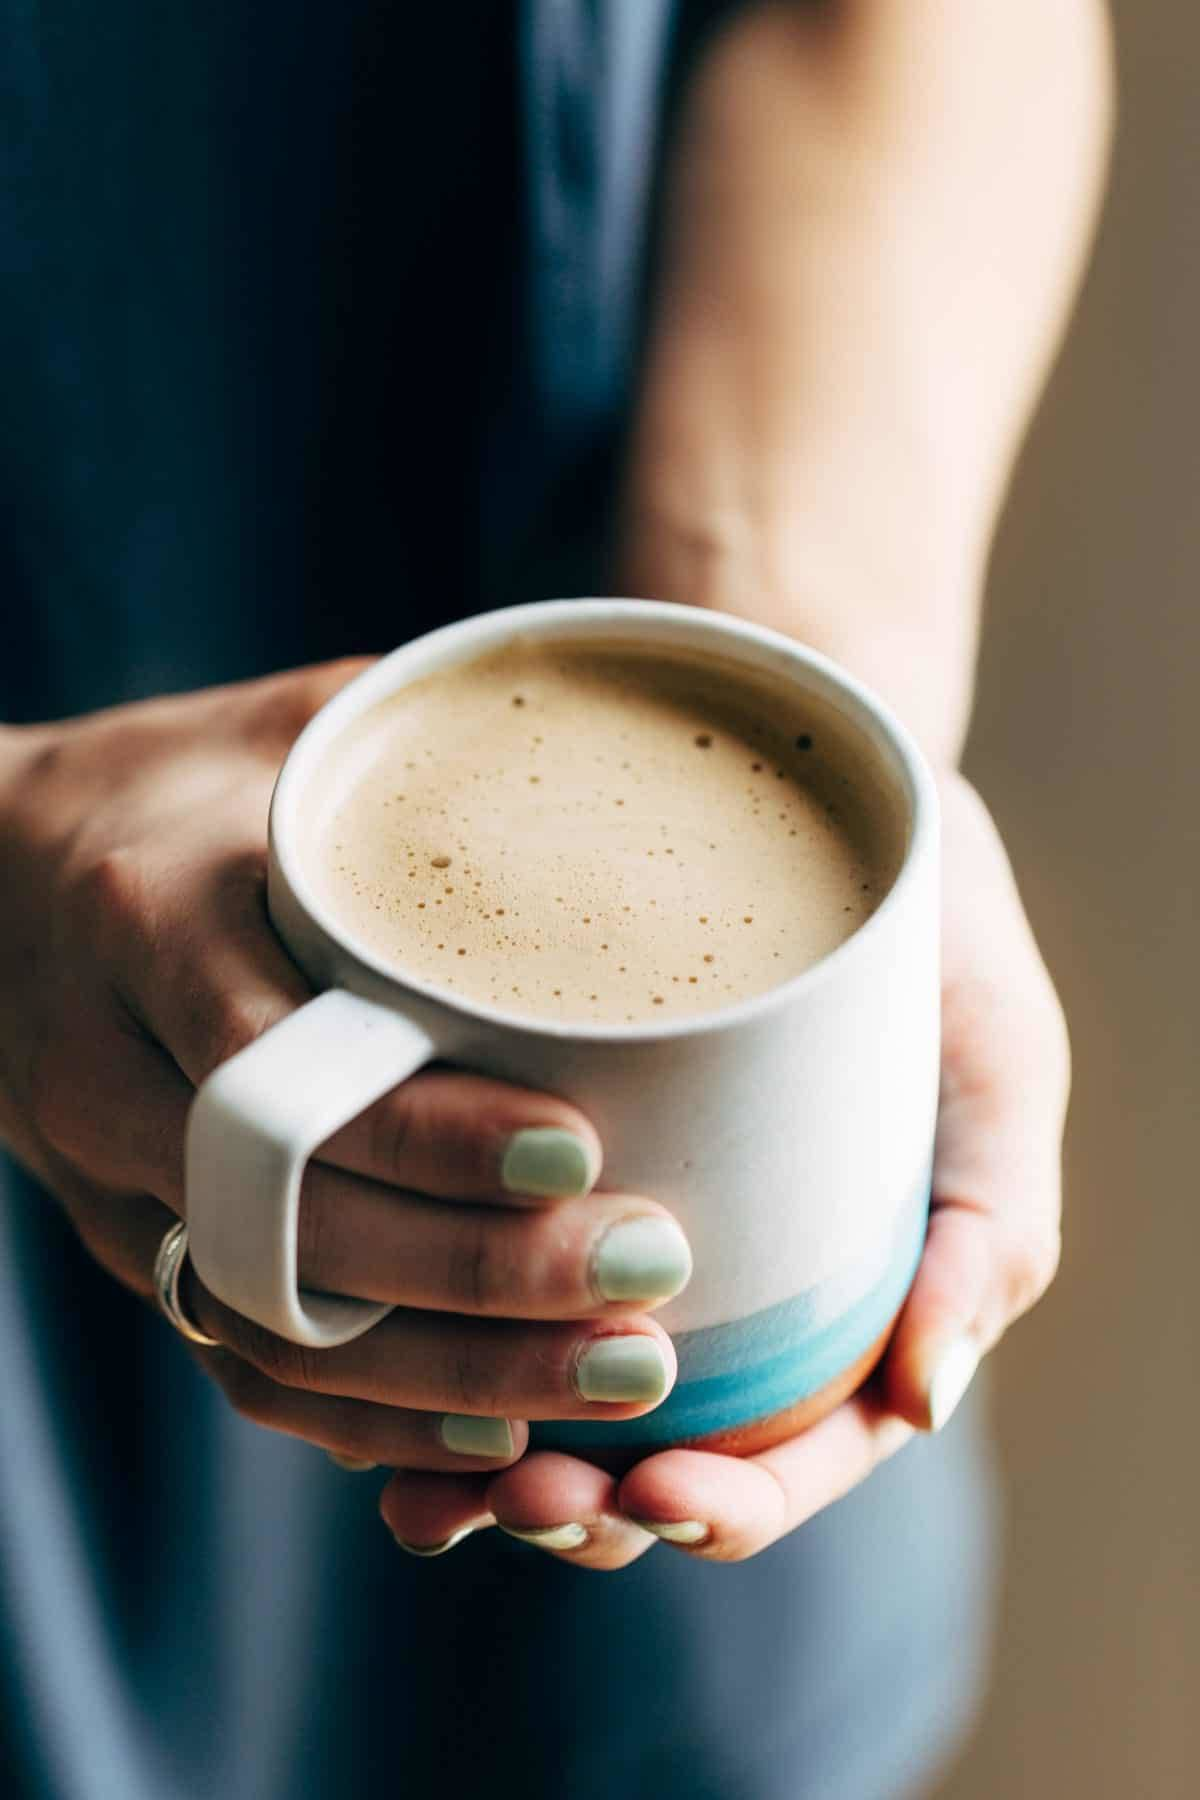 Hands holding a mug of Cashew Coffee.